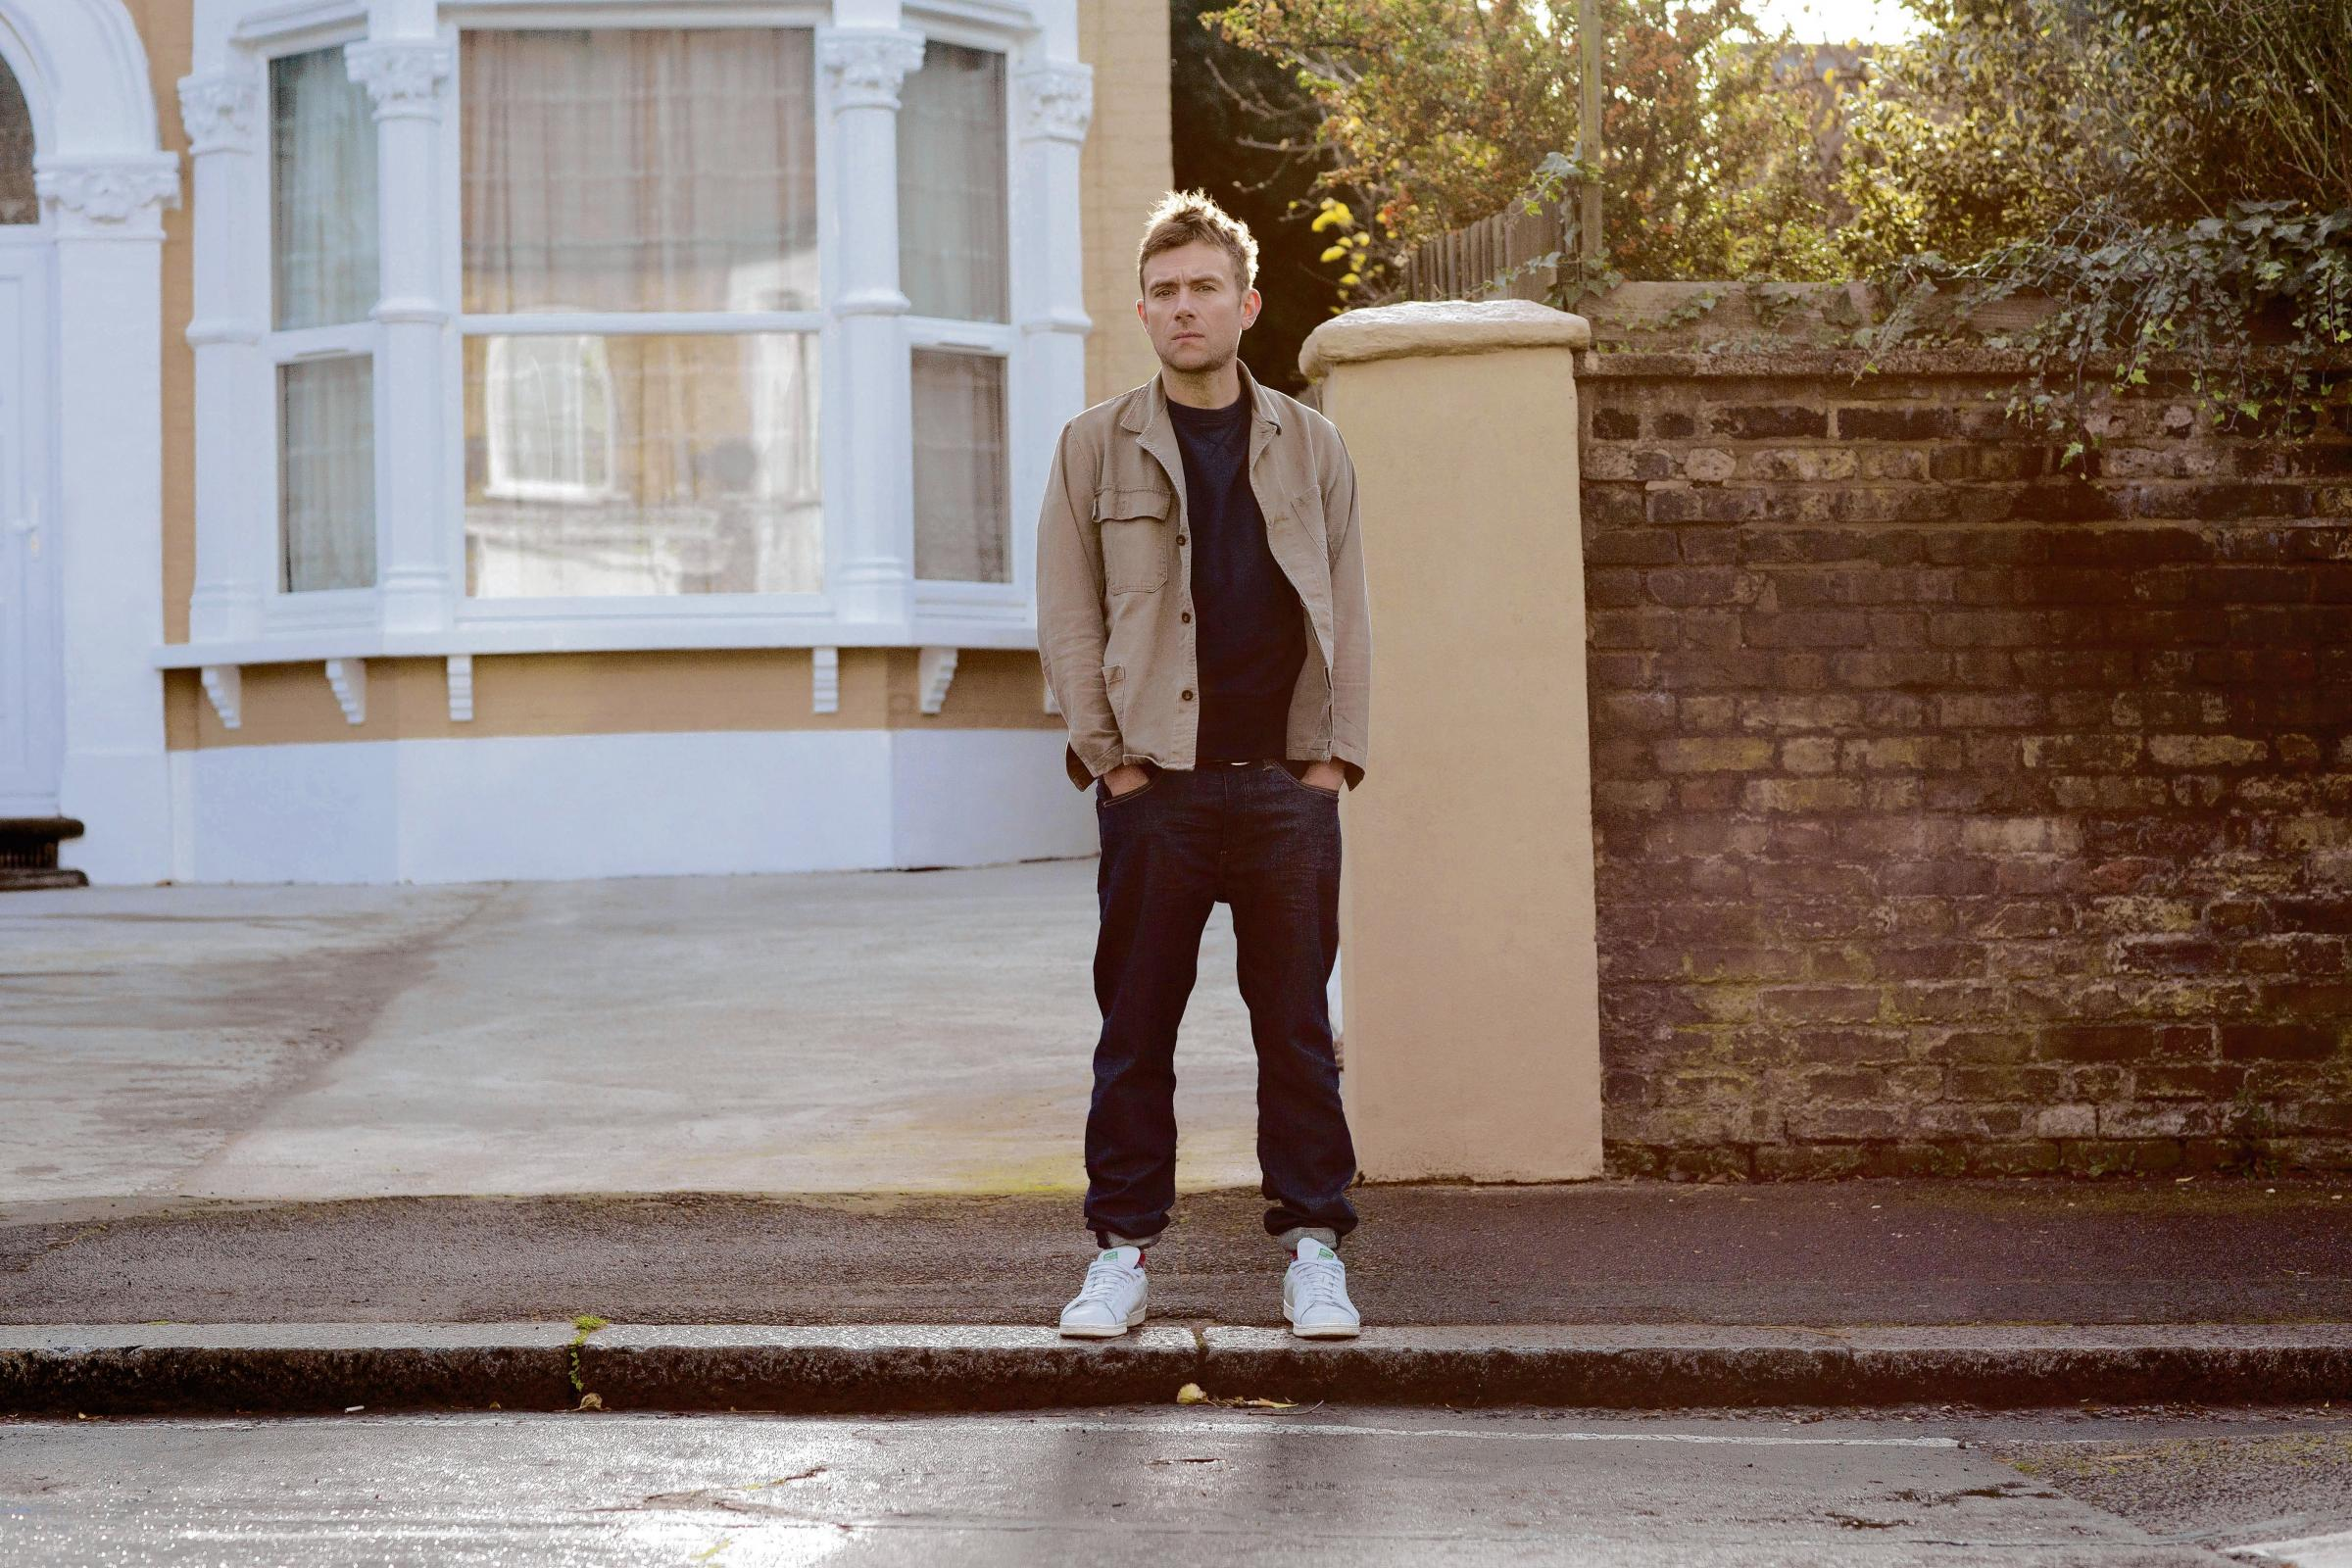 Back to his roots – Blur and Gorillaz frontman Damon Albarn